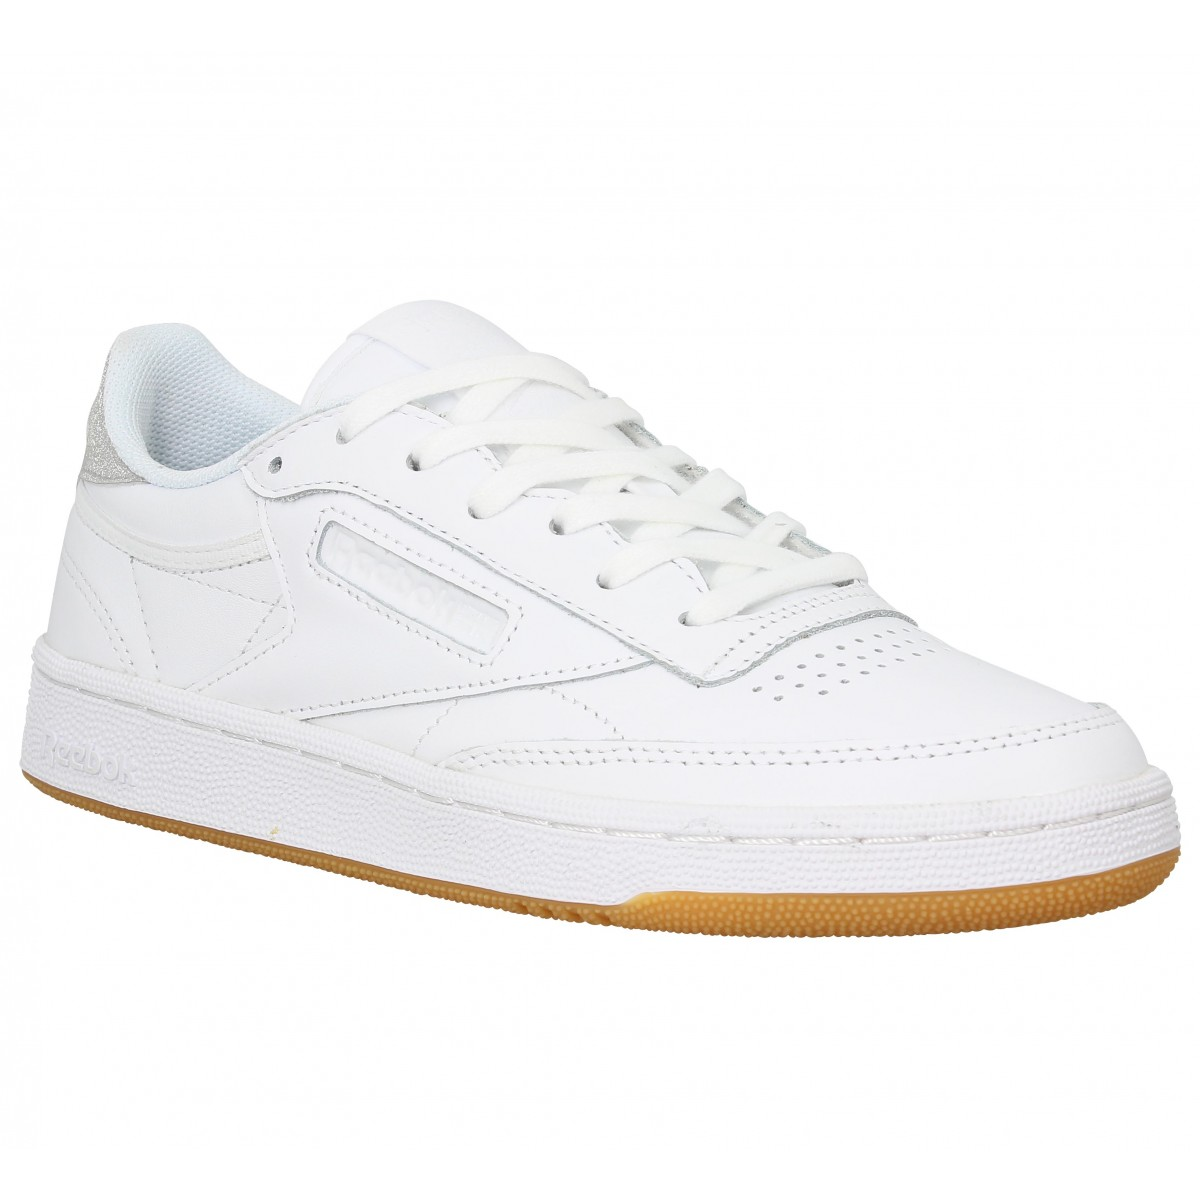 771d7d3947391 Baskets REEBOK Club C 85 Diamond Blanc